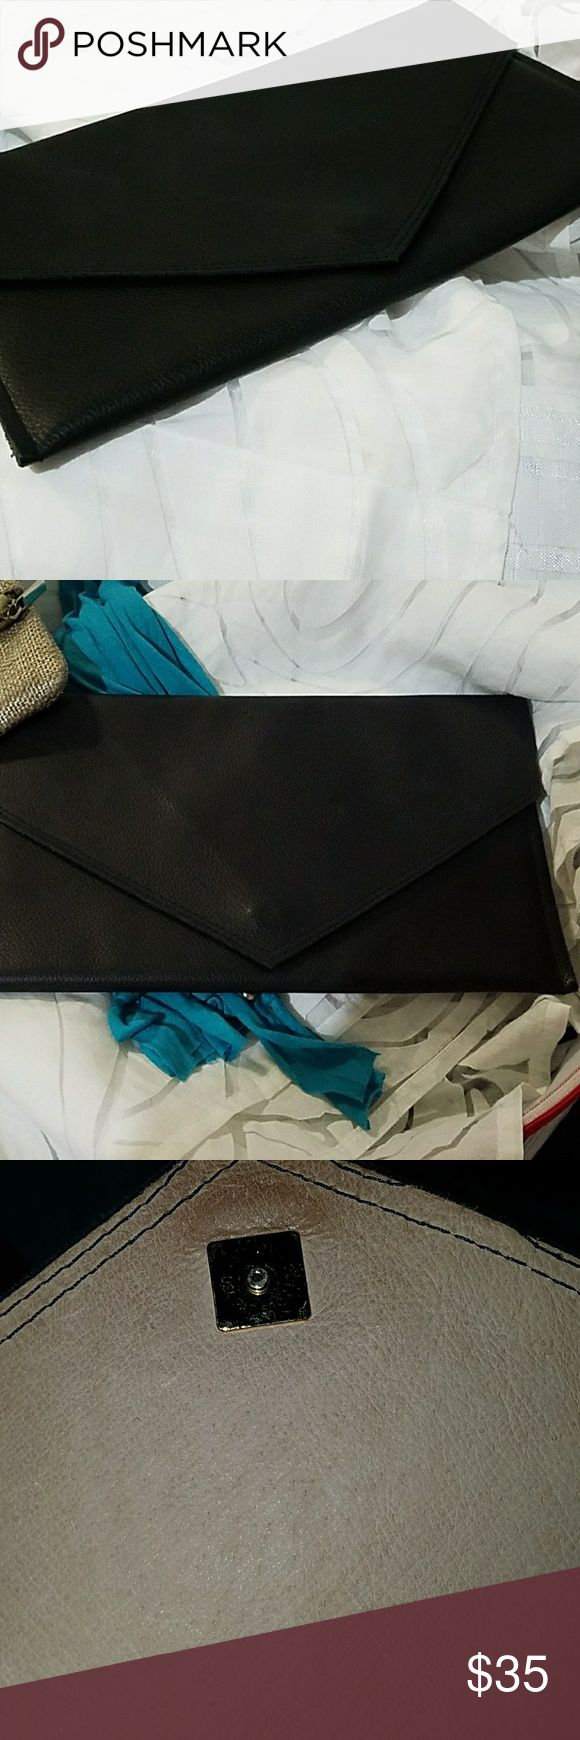 Bundle-Black Envelope Clutch Purse & Teal scarf Black Clutch Romag #5722126, Teal scarf w/silver rings on it Romag Bags Clutches & Wristlets